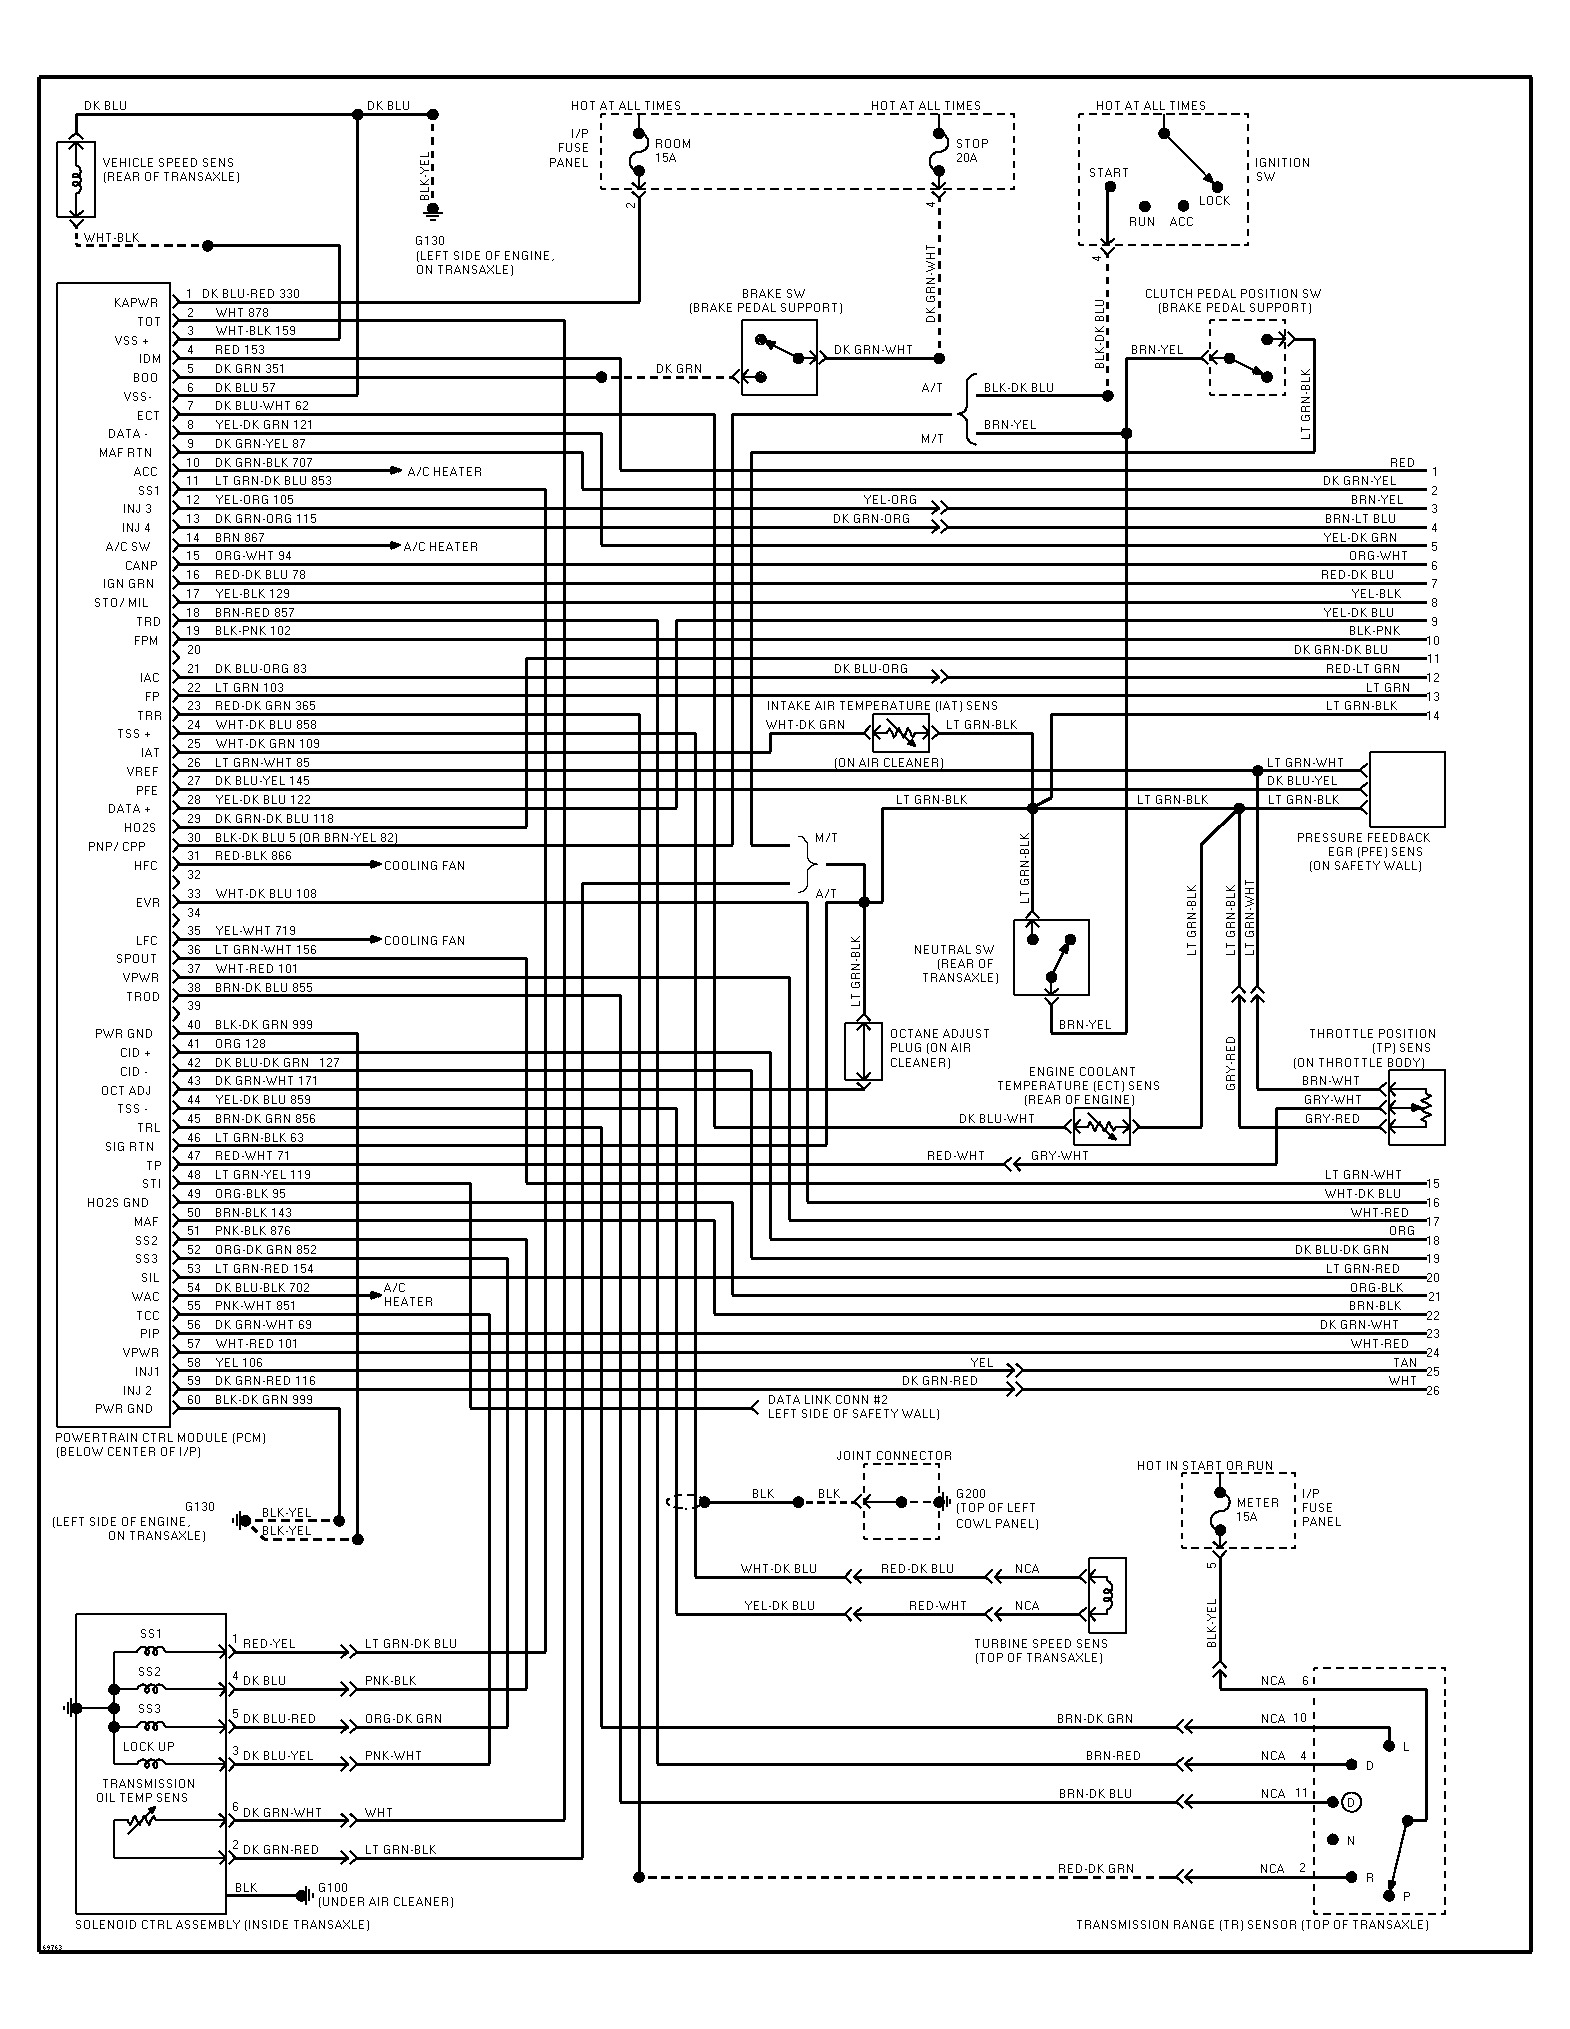 1995 Ford Escort Wiring Diagram I Need To Find A Color Coded